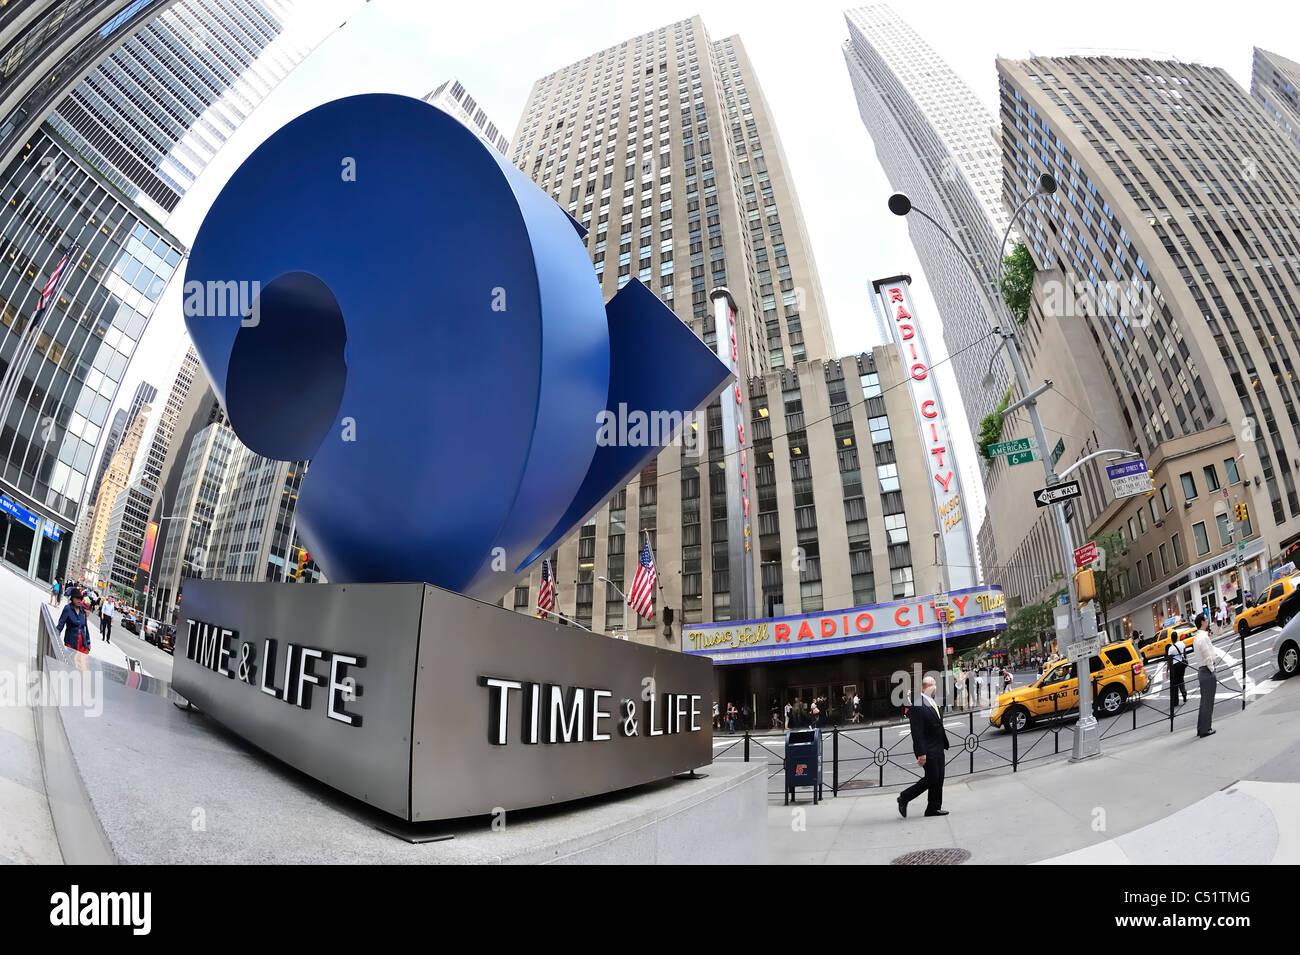 """Time & Life """"Cubed Curve"""" outdoor blue sculpture across street from Radio City New York City 2011 (180 degree fisheye Stock Photo"""